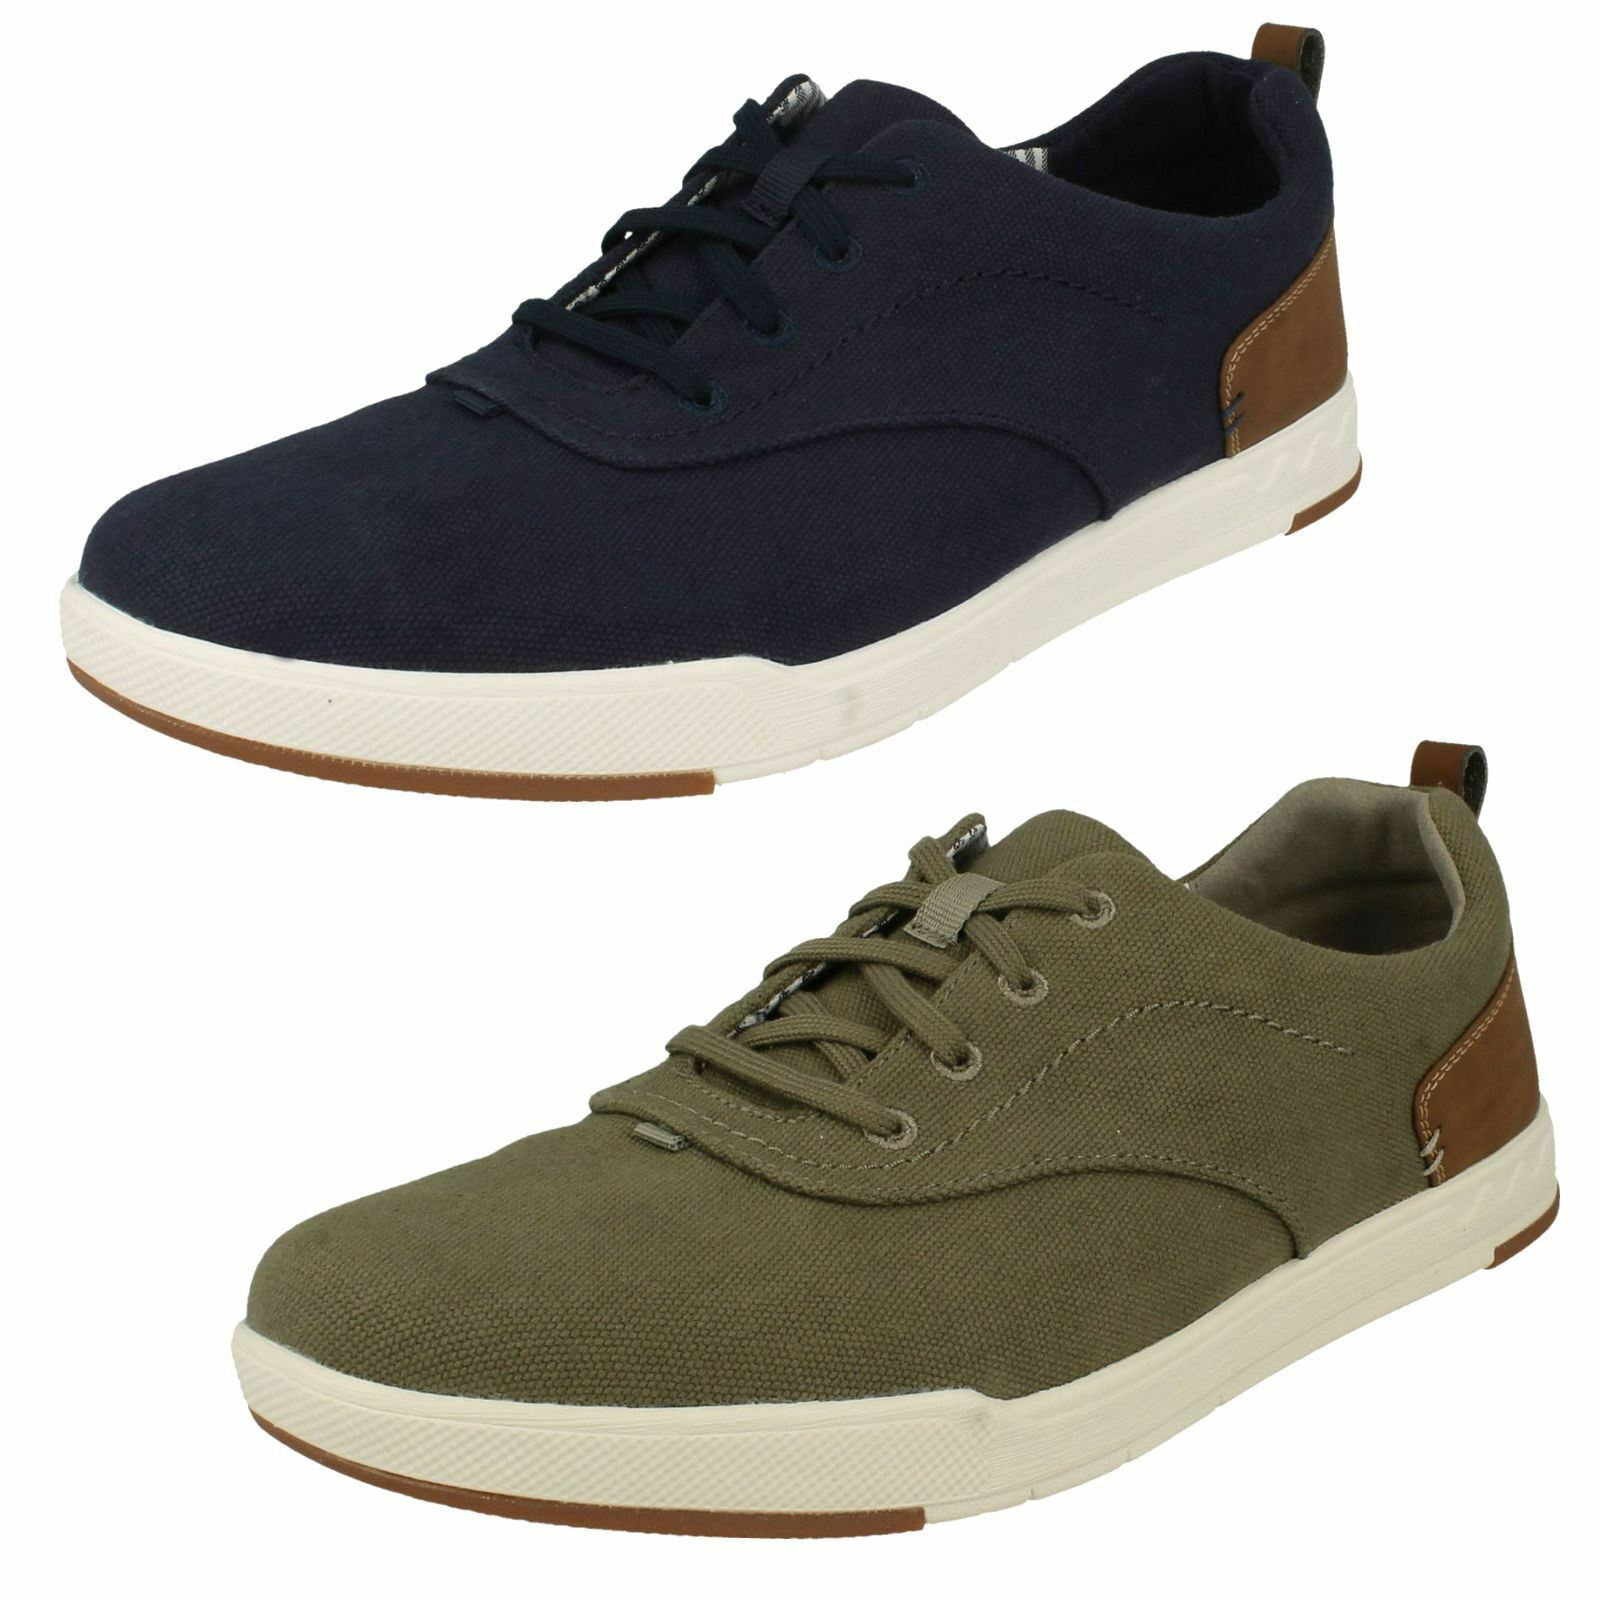 Clarks Mens Rounded Toe Casual Lace Up Textile Trainers Step Isle Crew